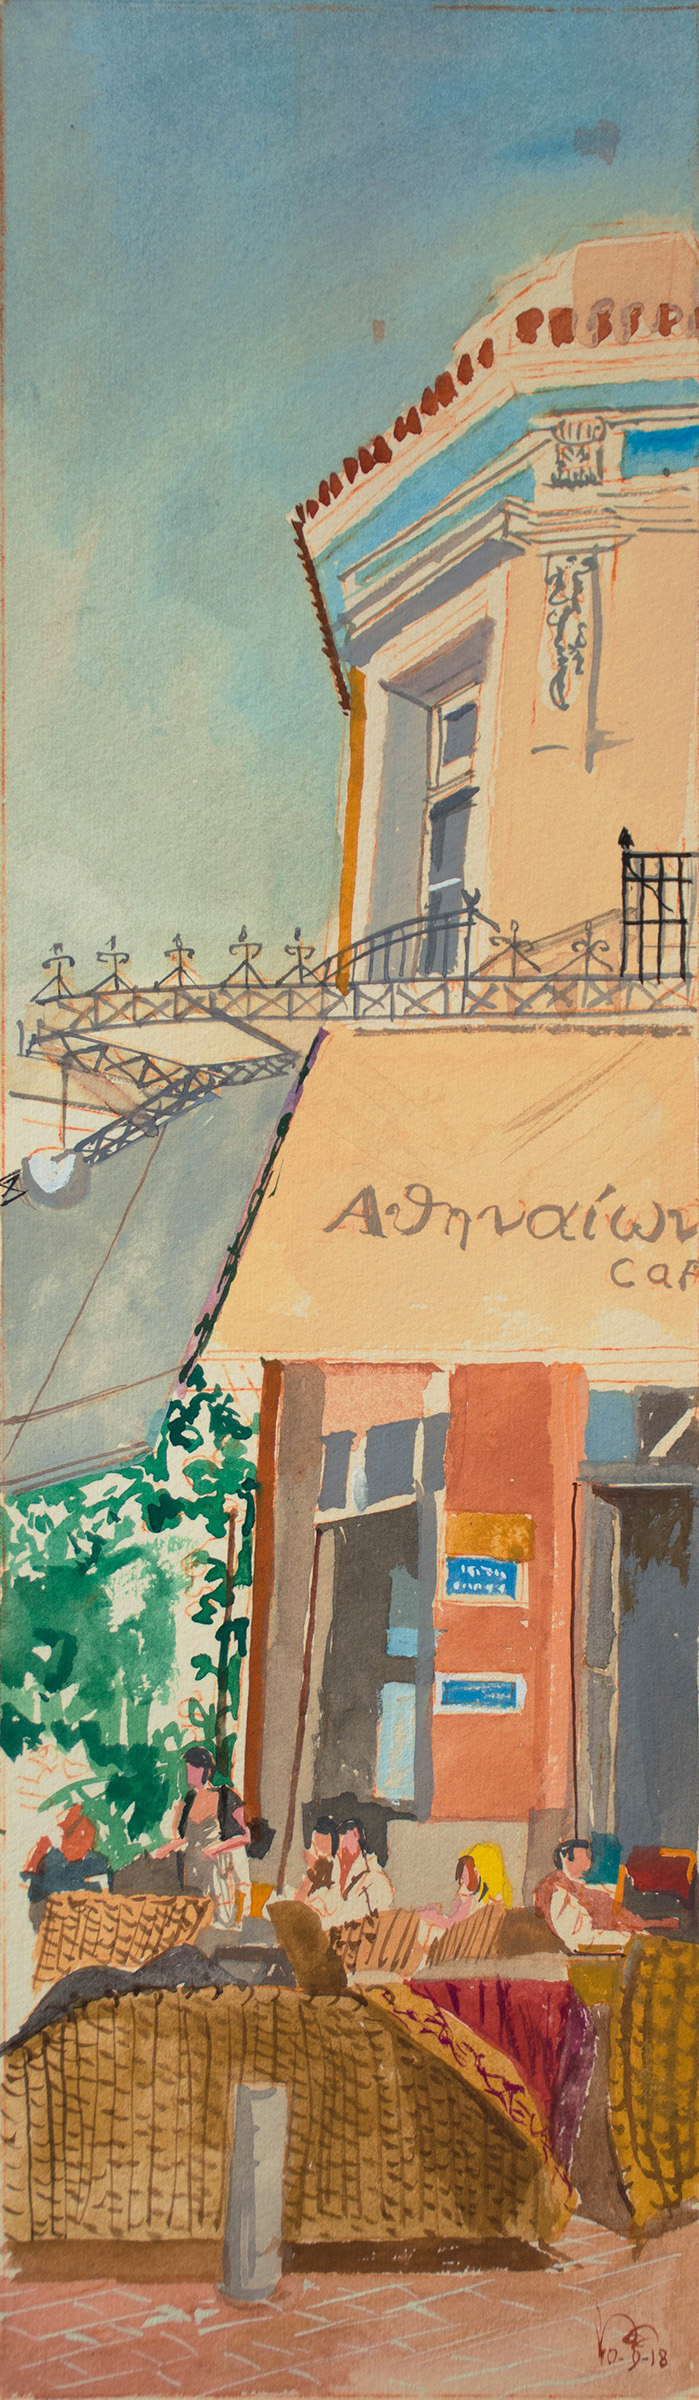 athinaion café  38.5x11 cm. gouache on archival paper